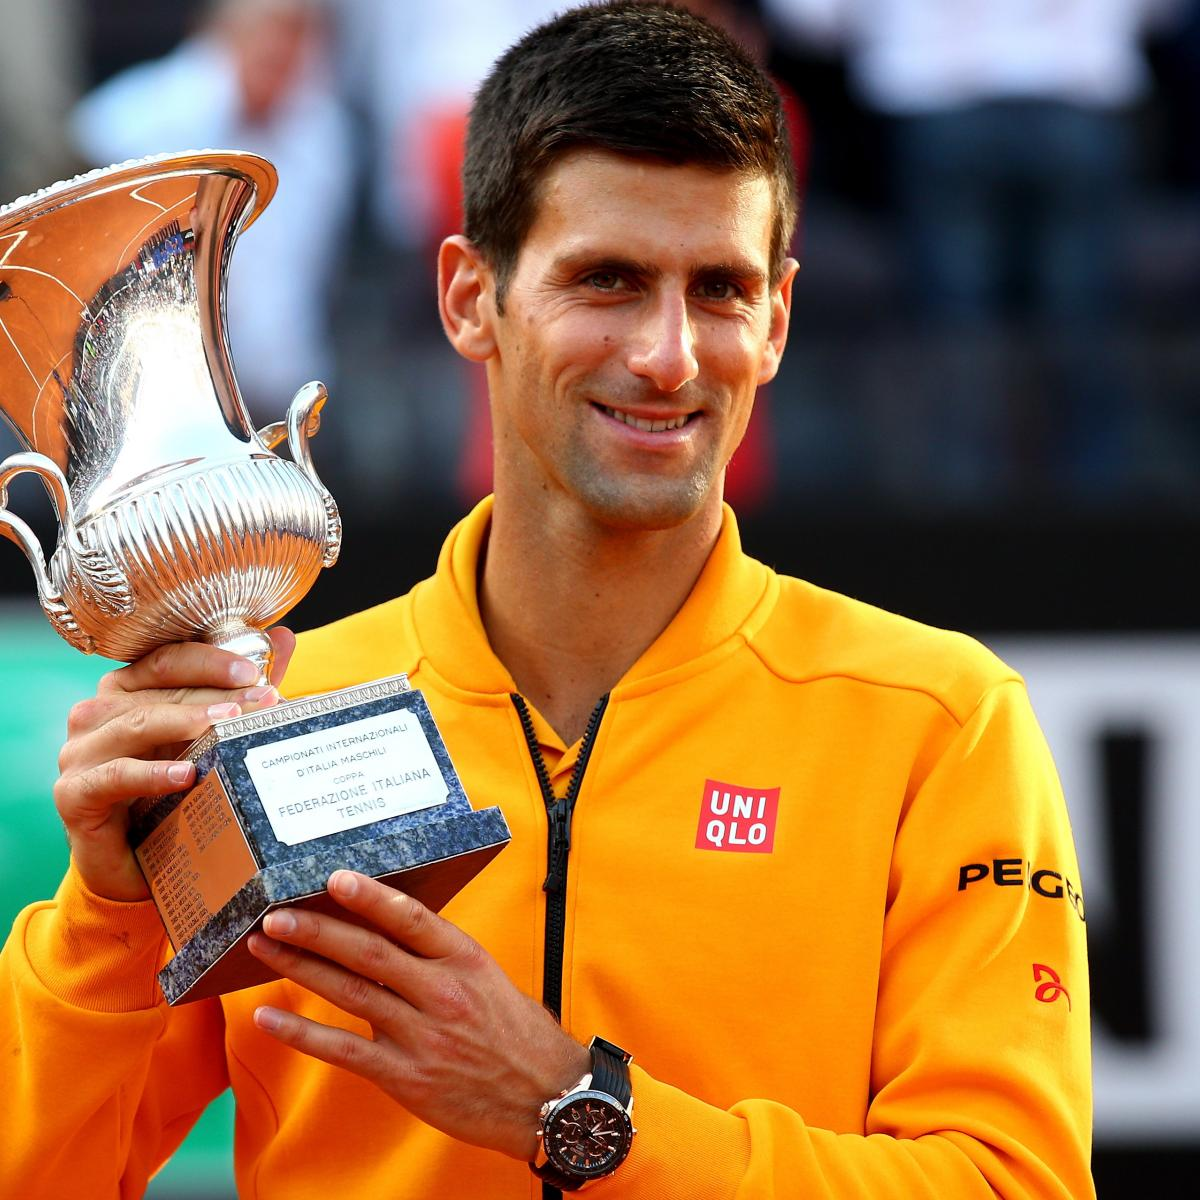 French Open 2013 Biggest Winners From Week 1 At Roland: Novak Djokovic And Maria Sharapova Top Winners And Losers